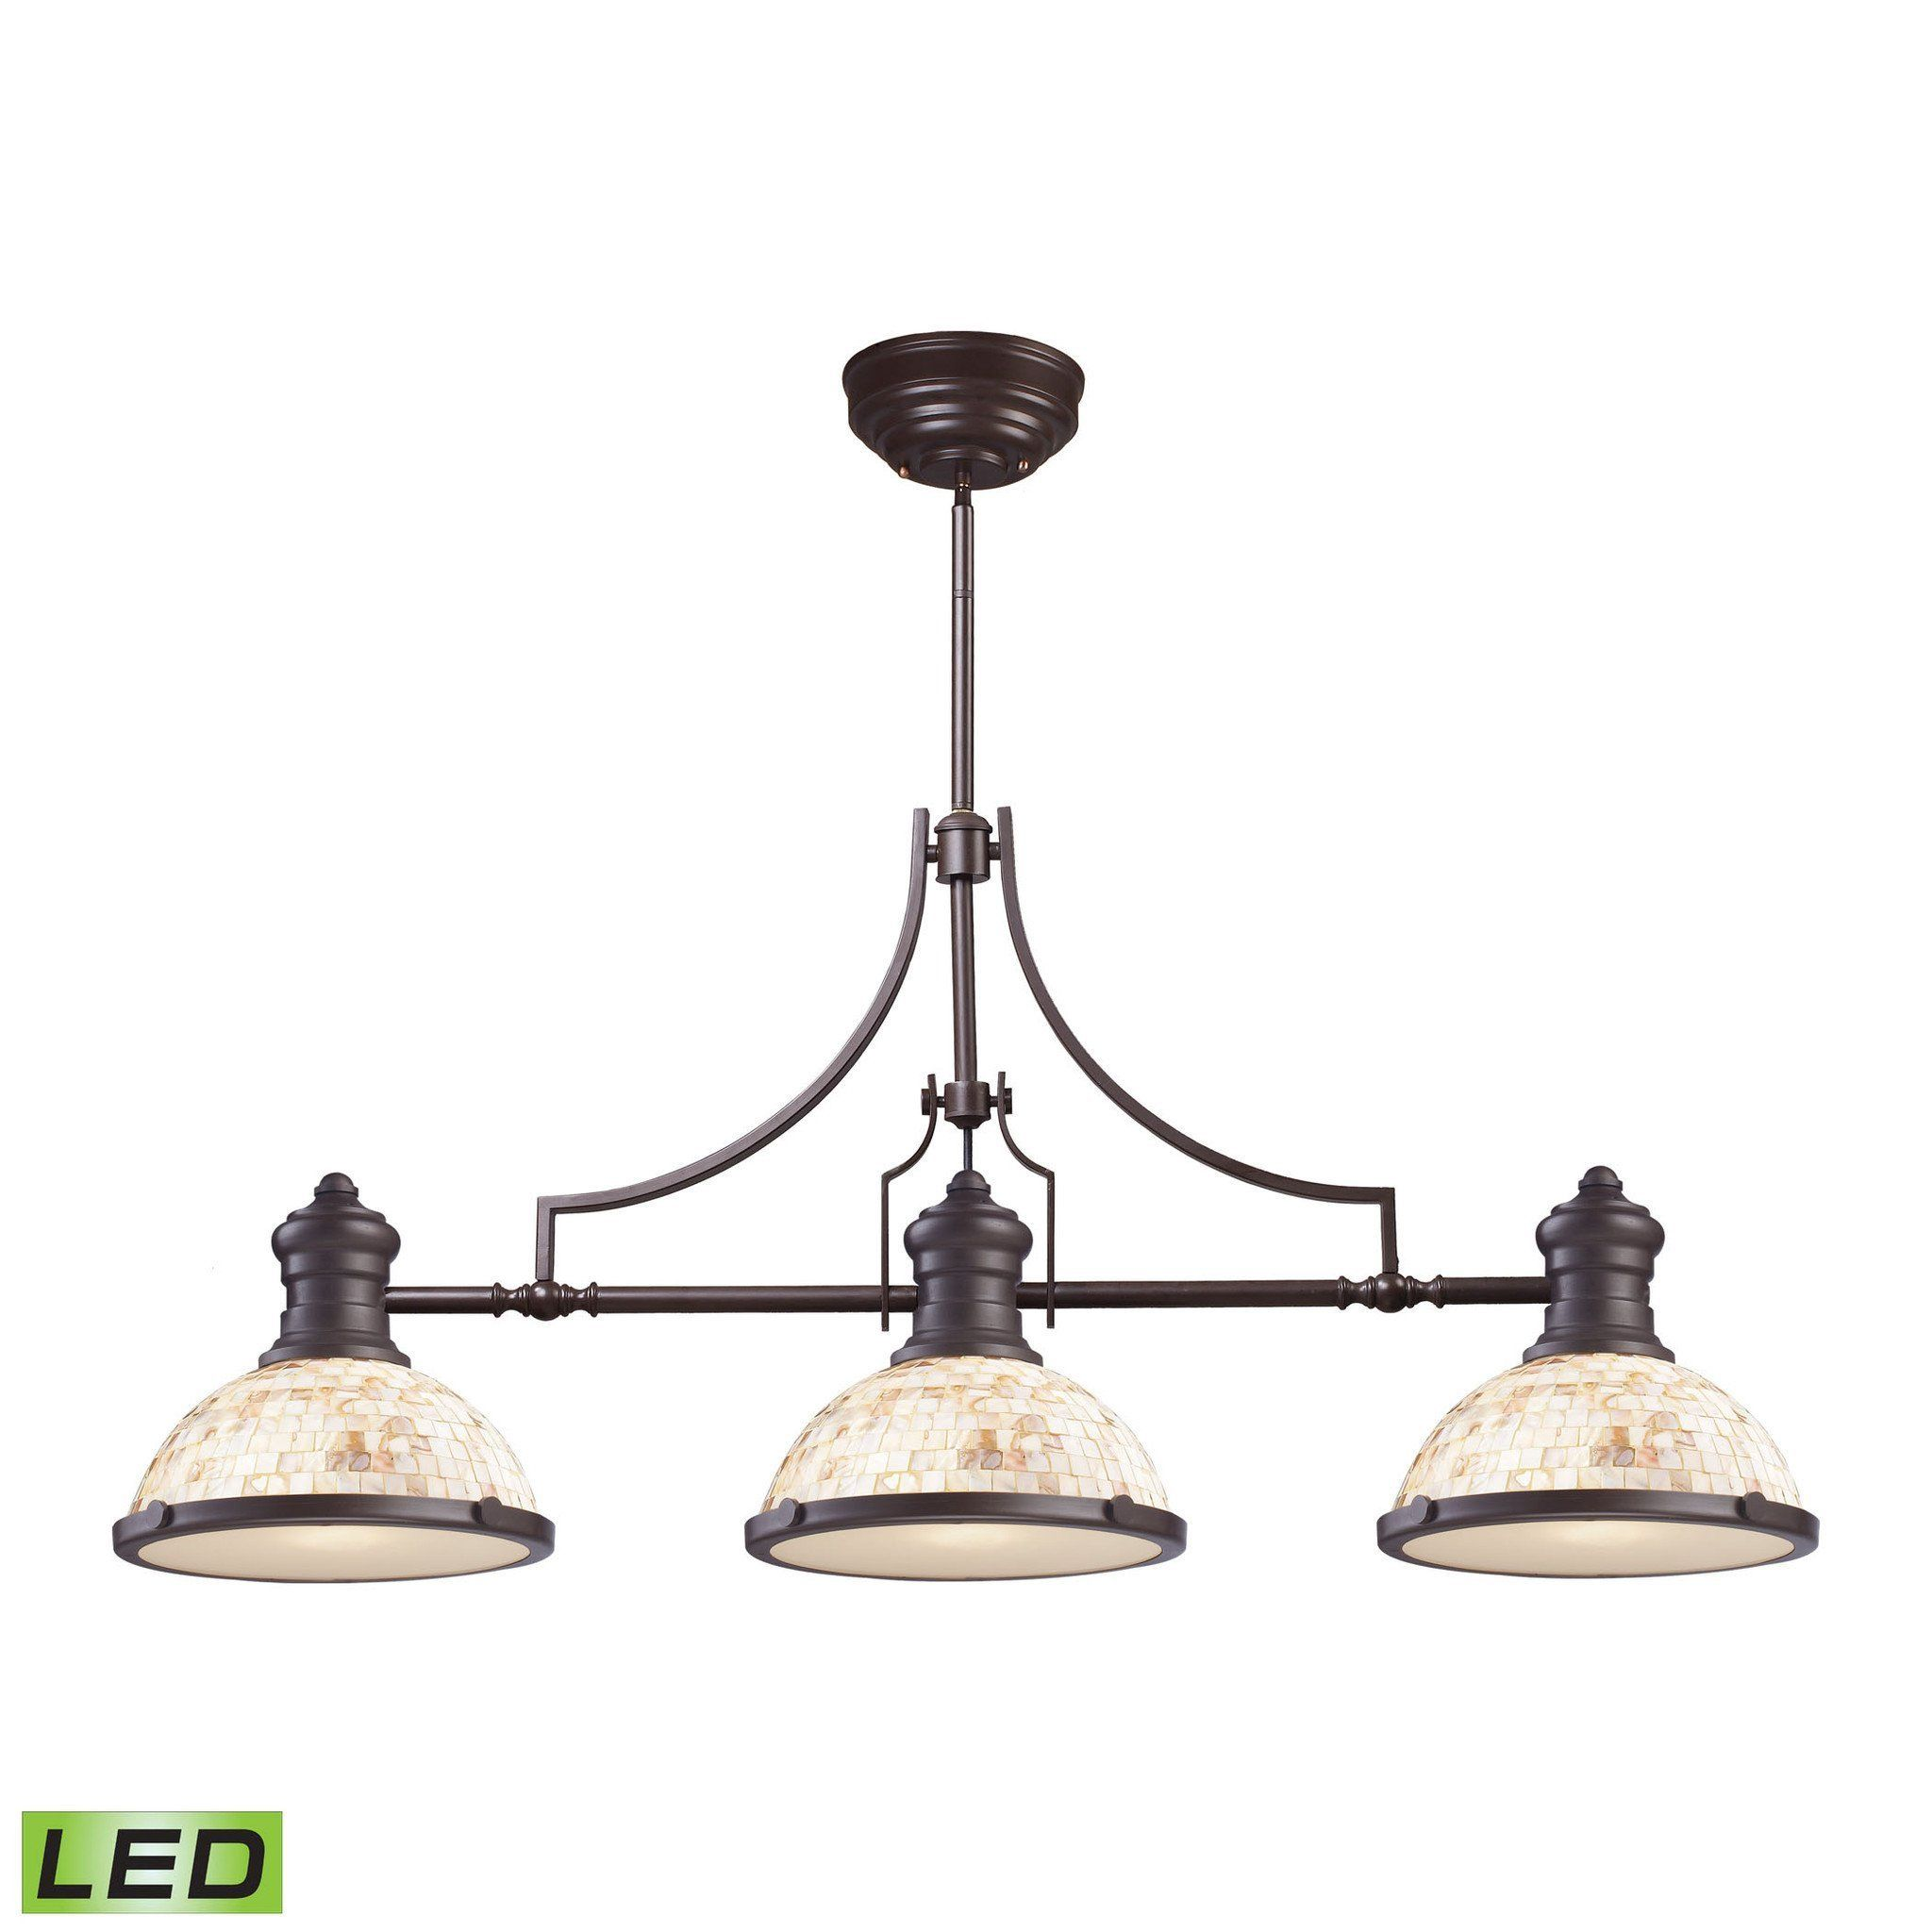 Elk lighting 66435 3 led chadwick collection oiled bronze finish